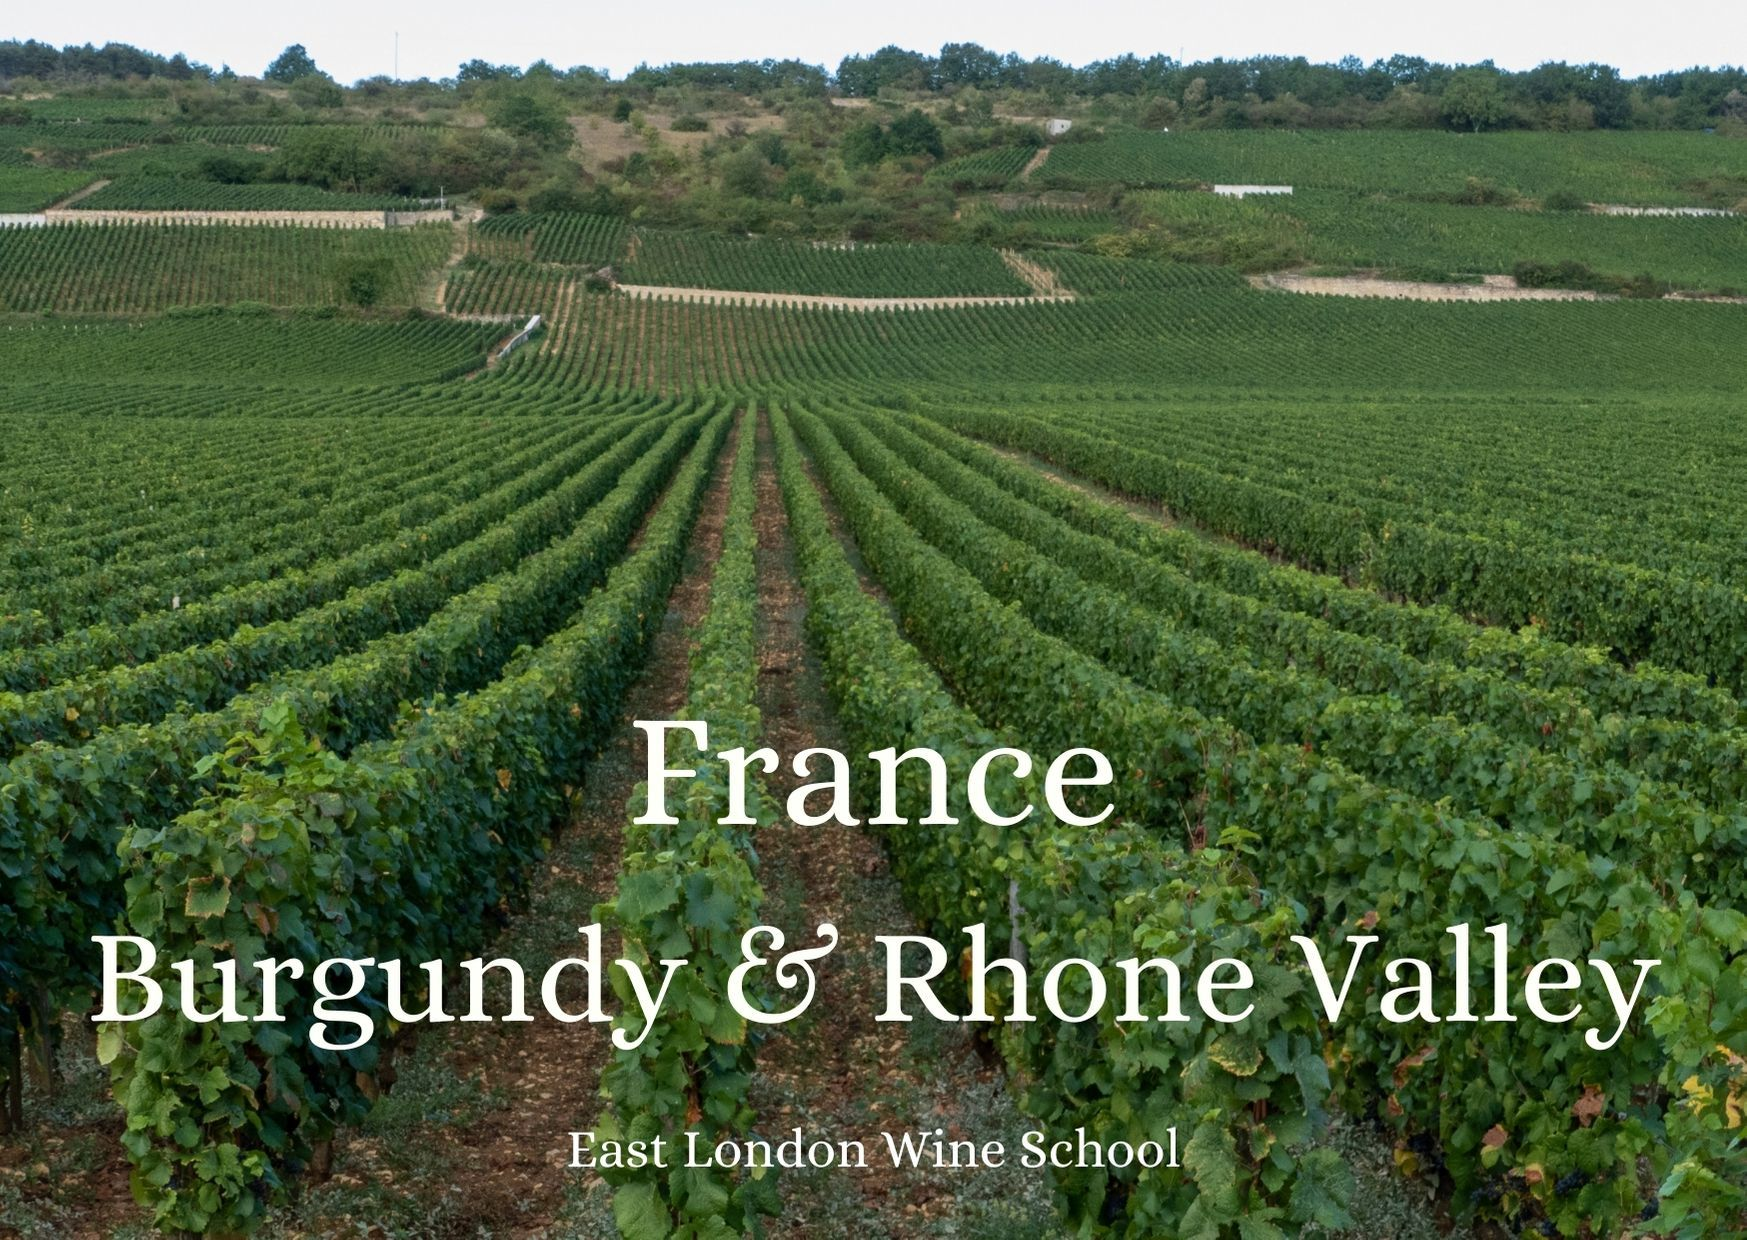 Wines of Burgundy and the Rhone Valley